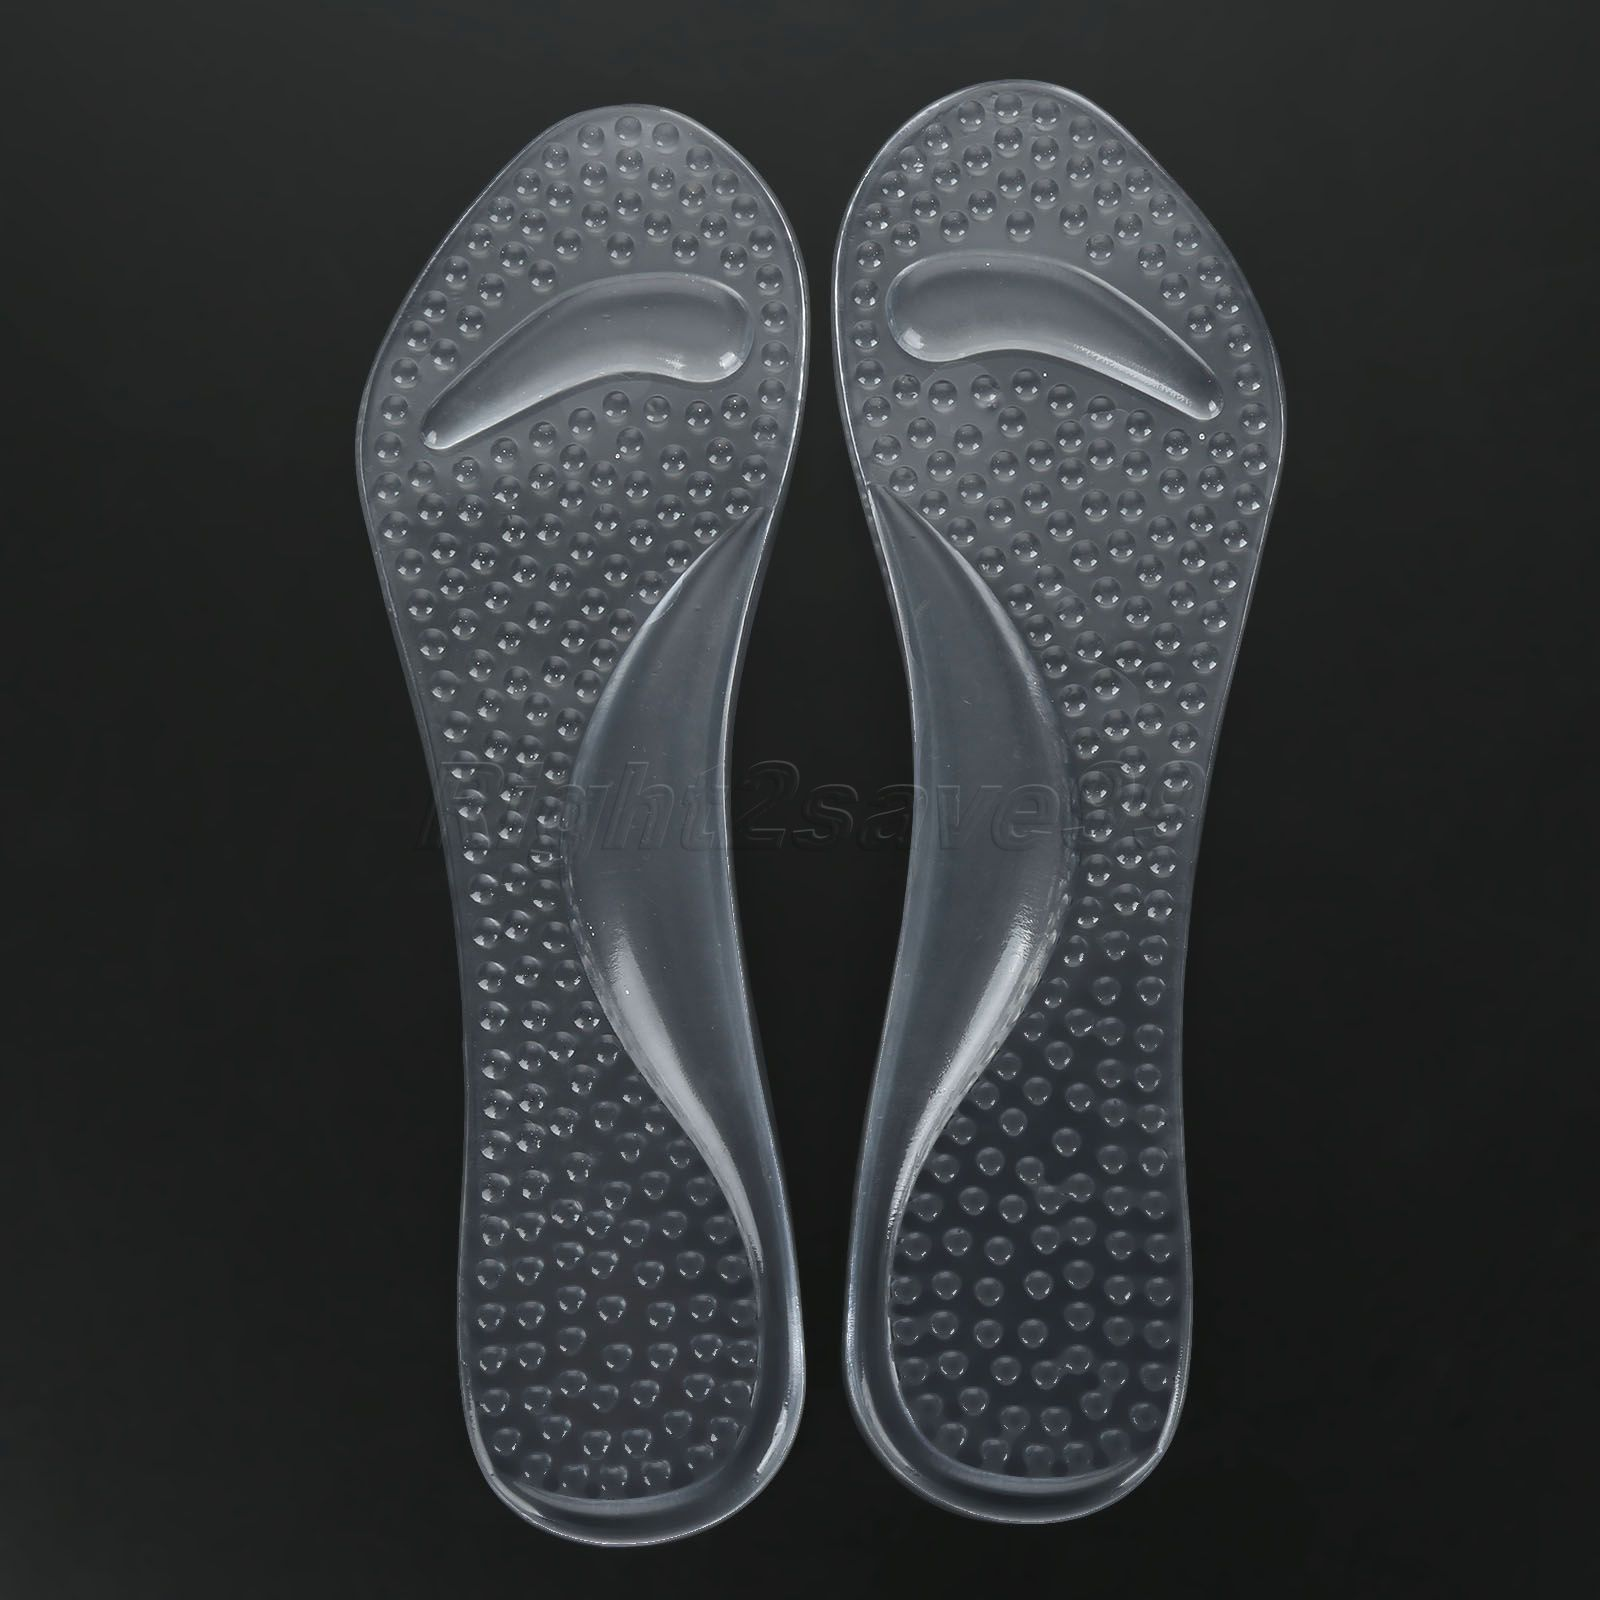 2017 New Arrive 1 Pair Clear Silicone Shoes Non-Slip Sandals High Heel Arch Cushion Support Silicone Gel Pads Shoes Insole